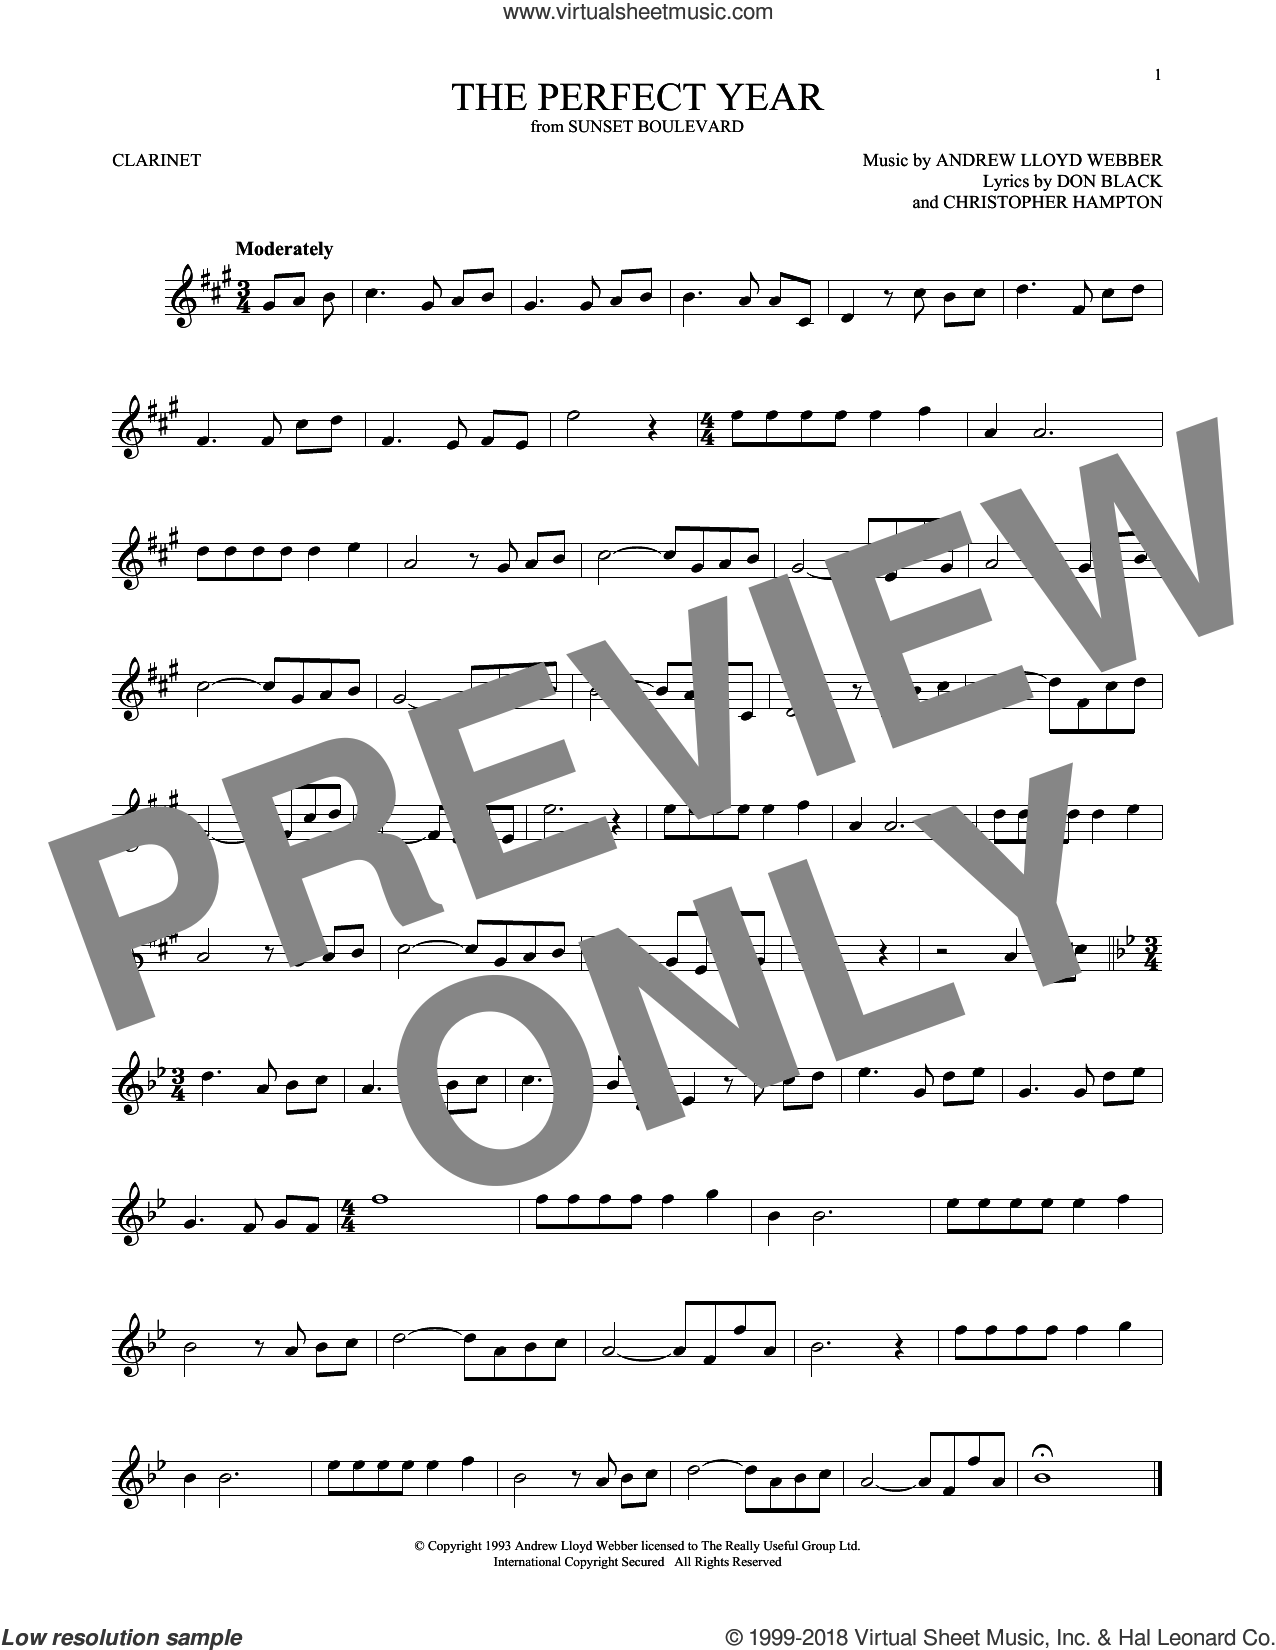 The Perfect Year (from Sunset Boulevard) sheet music for clarinet solo by Andrew Lloyd Webber, Christopher Hampton and Don Black, intermediate skill level